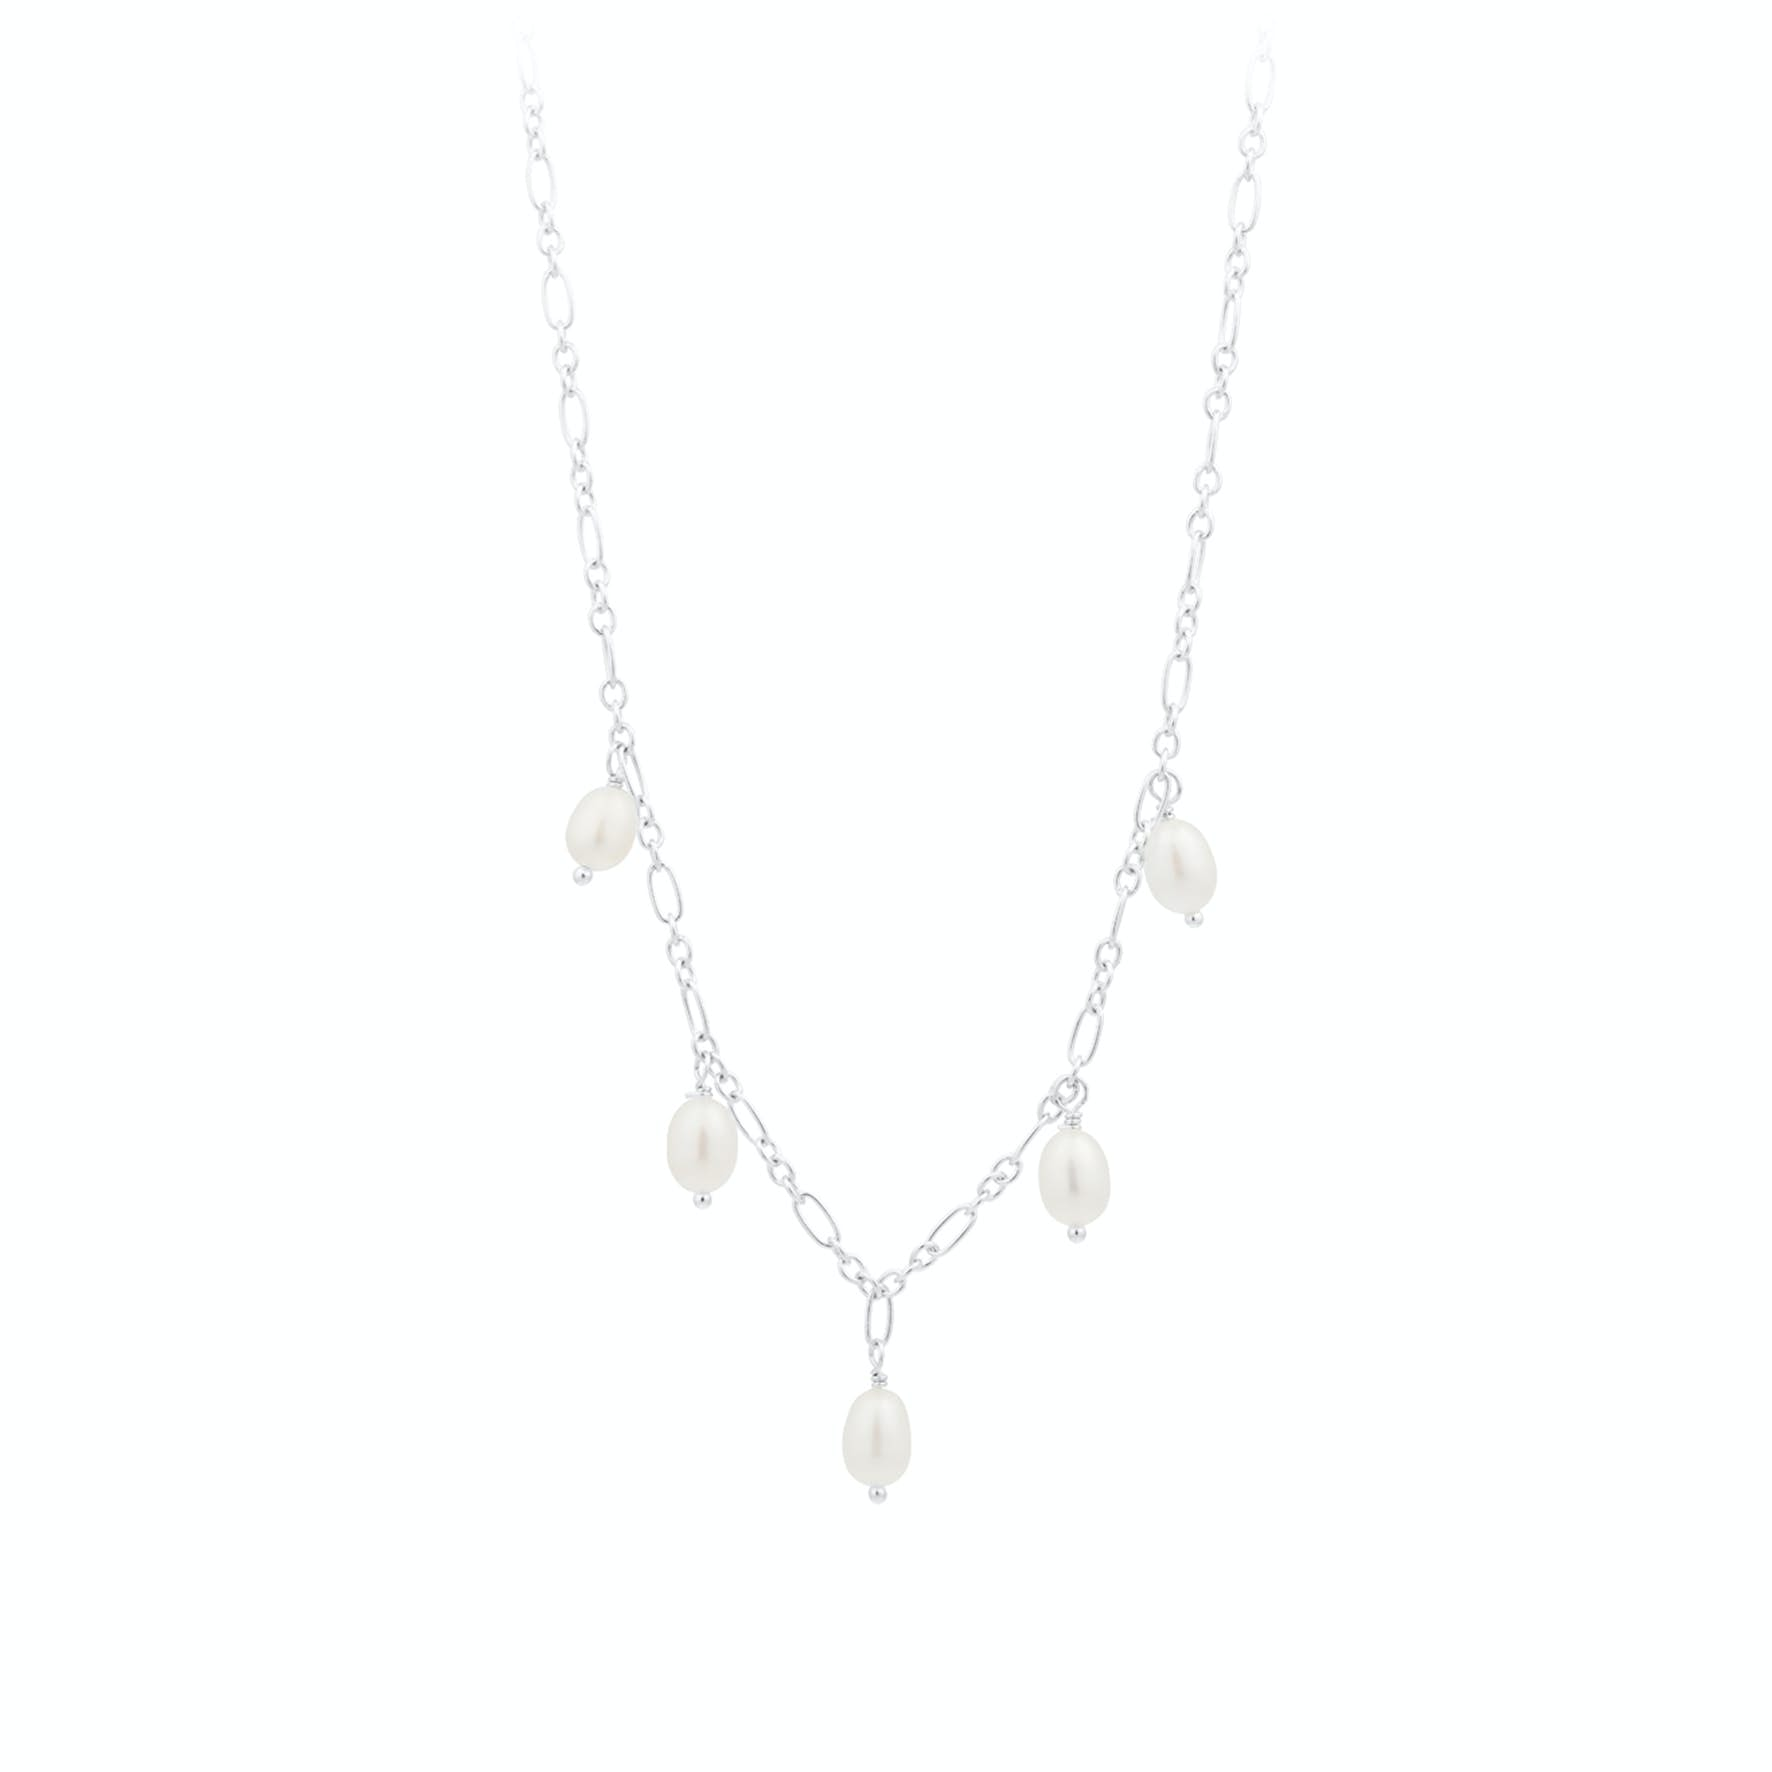 Ocean Dream Necklace from Pernille Corydon in Silver Sterling 925|Freshwater Pearl